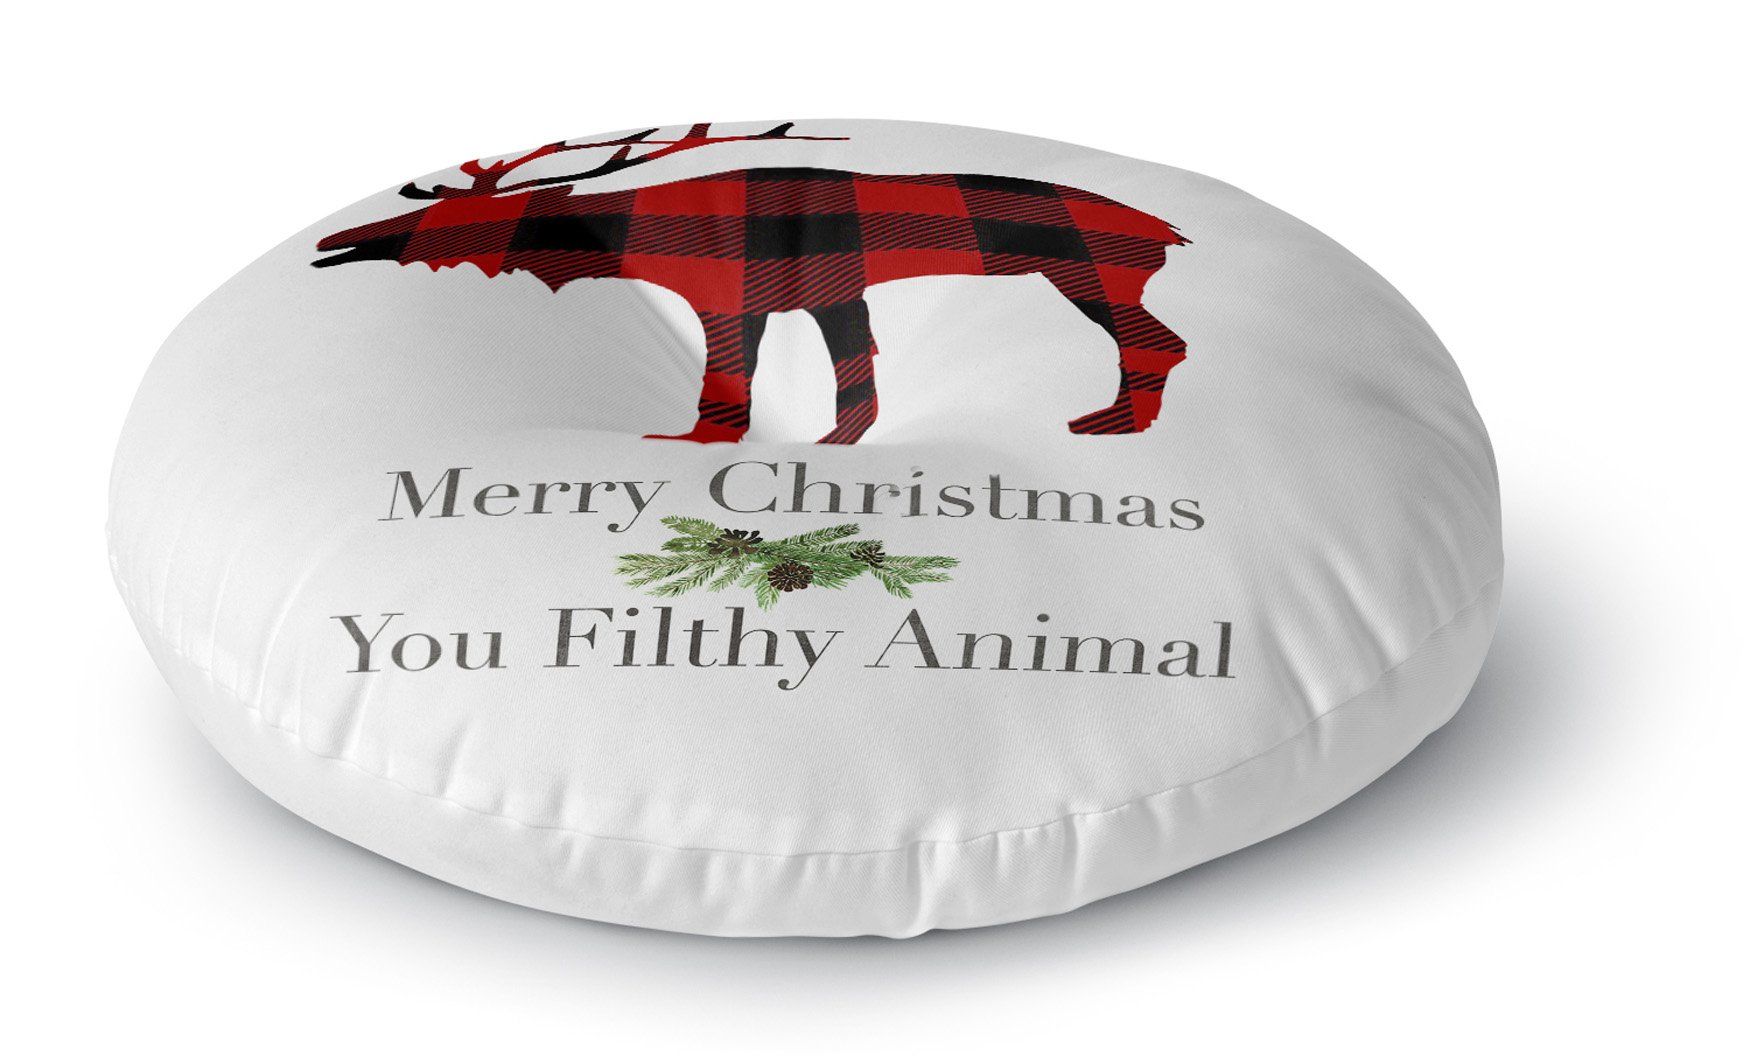 KAVKA DESIGNS Filthy Animal Floor Pillow, (Red/Black/Green/White) - TRADITIONS Collection, Size: 26x26x8 - (TELAVC1395FPR26)